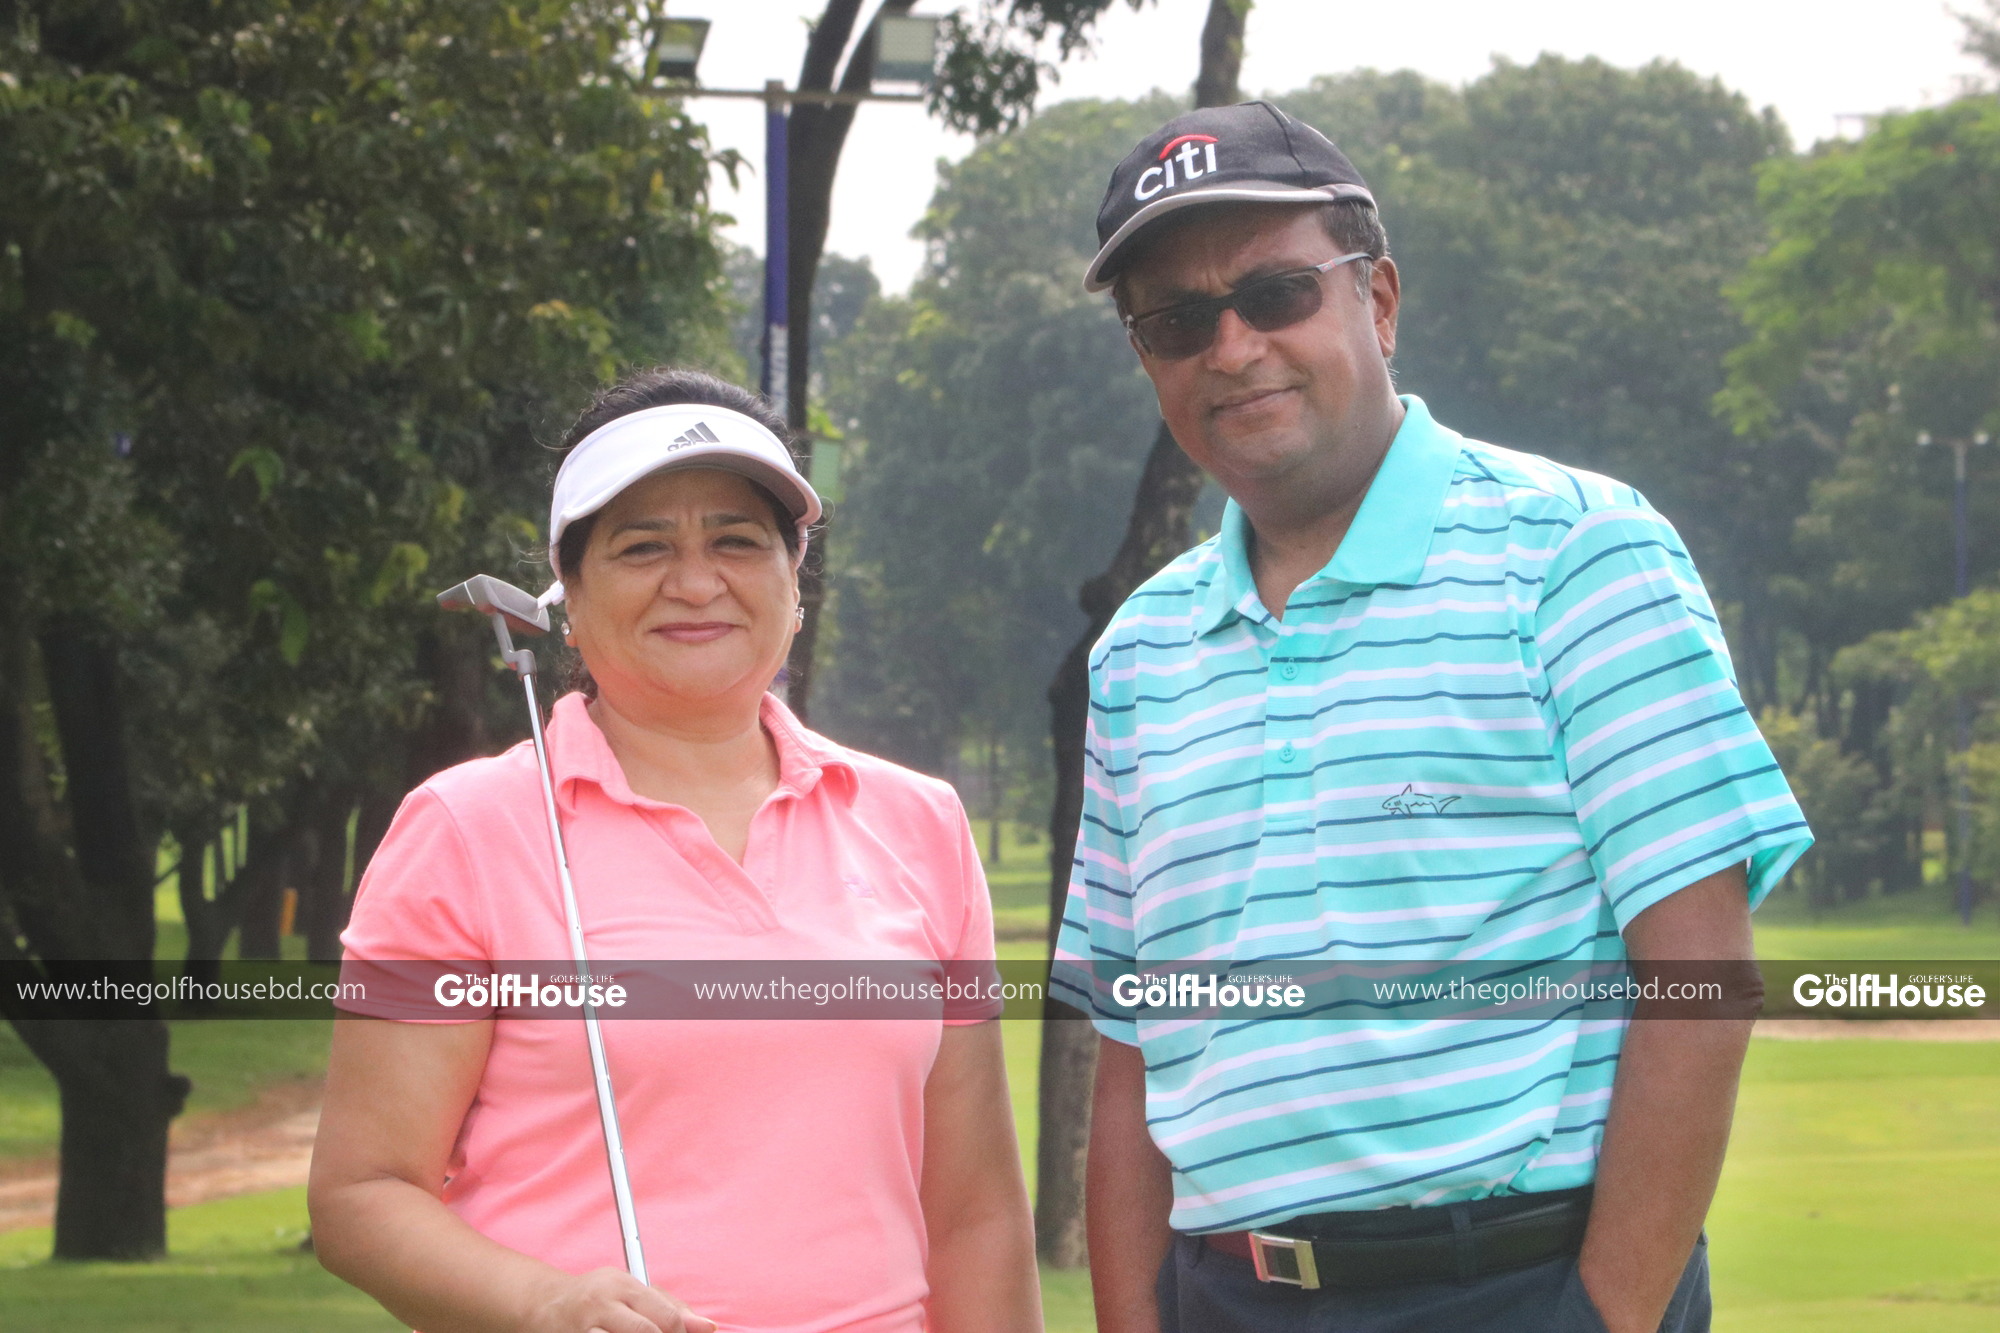 N_Rajashekaran_has_been_in_the_banking_profession_for_35_years_ever_since_completing_his_engineering_followed_by_an_MBA_His_profession_has_taken_him_places_most_recently_landing him_in_Bangladesh_as_the_Country_Corporate_Officer_of_Citibank_NA